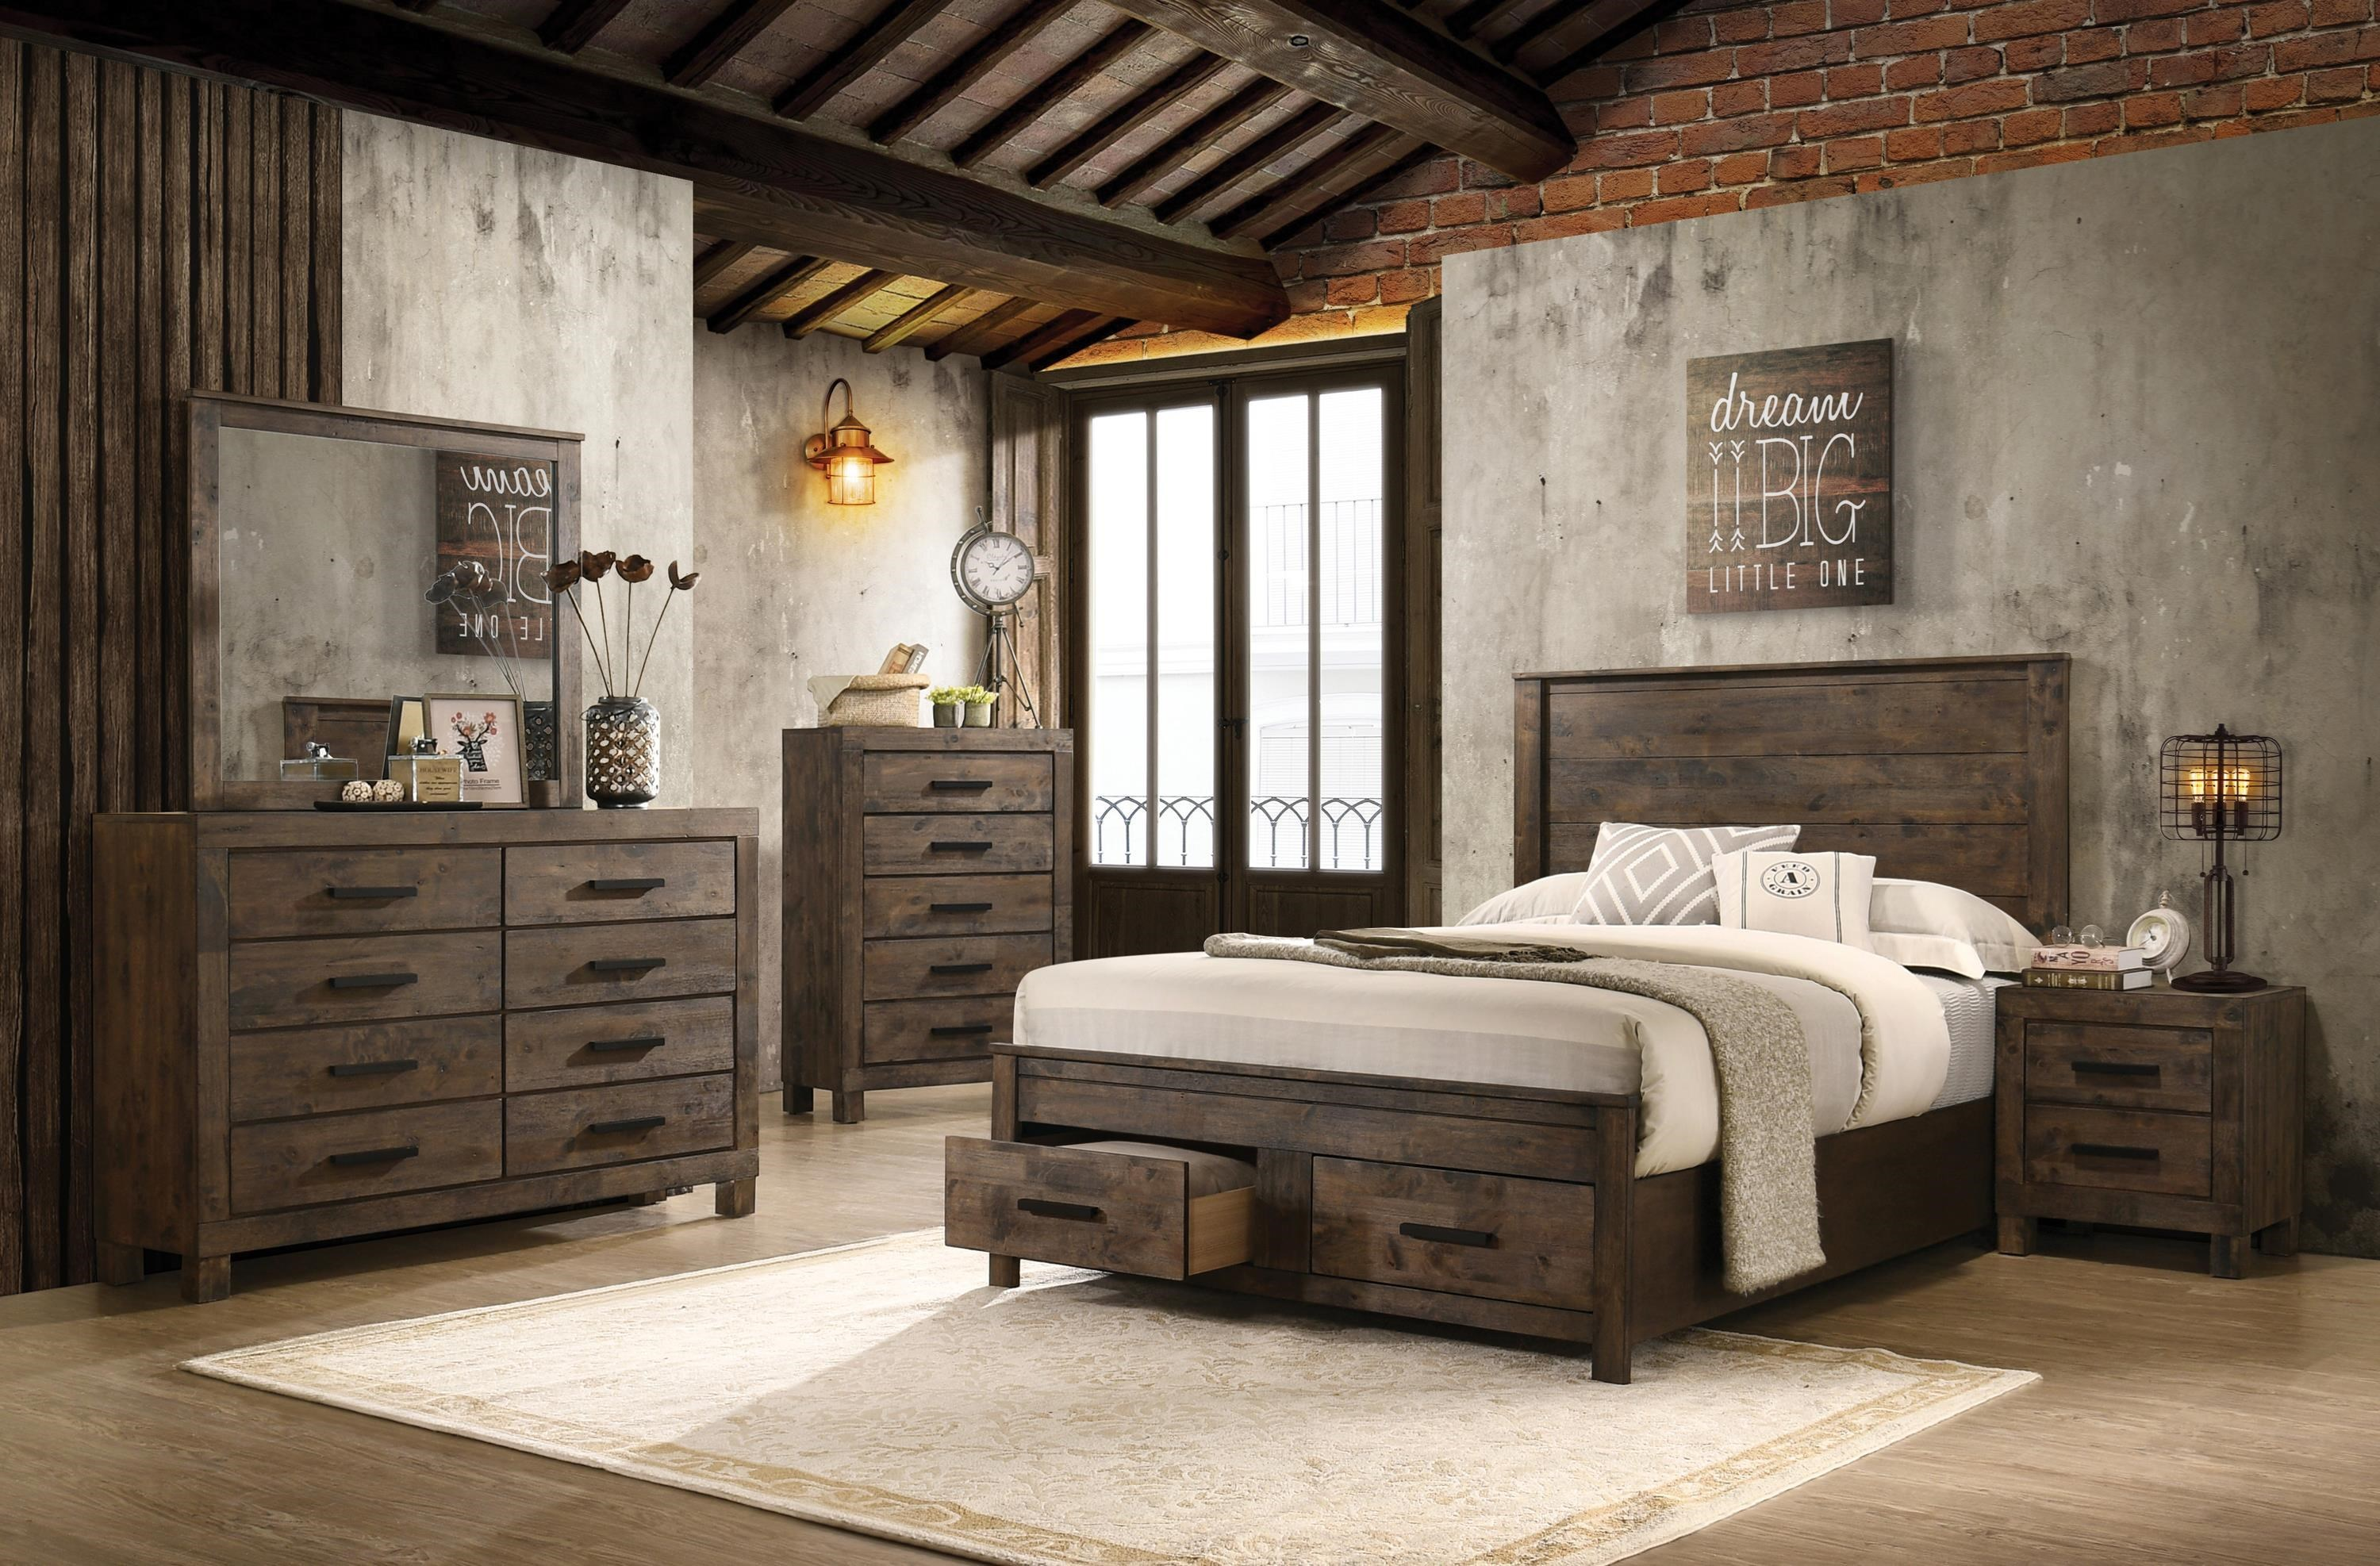 Coaster Rustic Brown 222631keb 2 4 5 Piece King Bedroom Set Sam Levitz Outlet Bedroom Groups